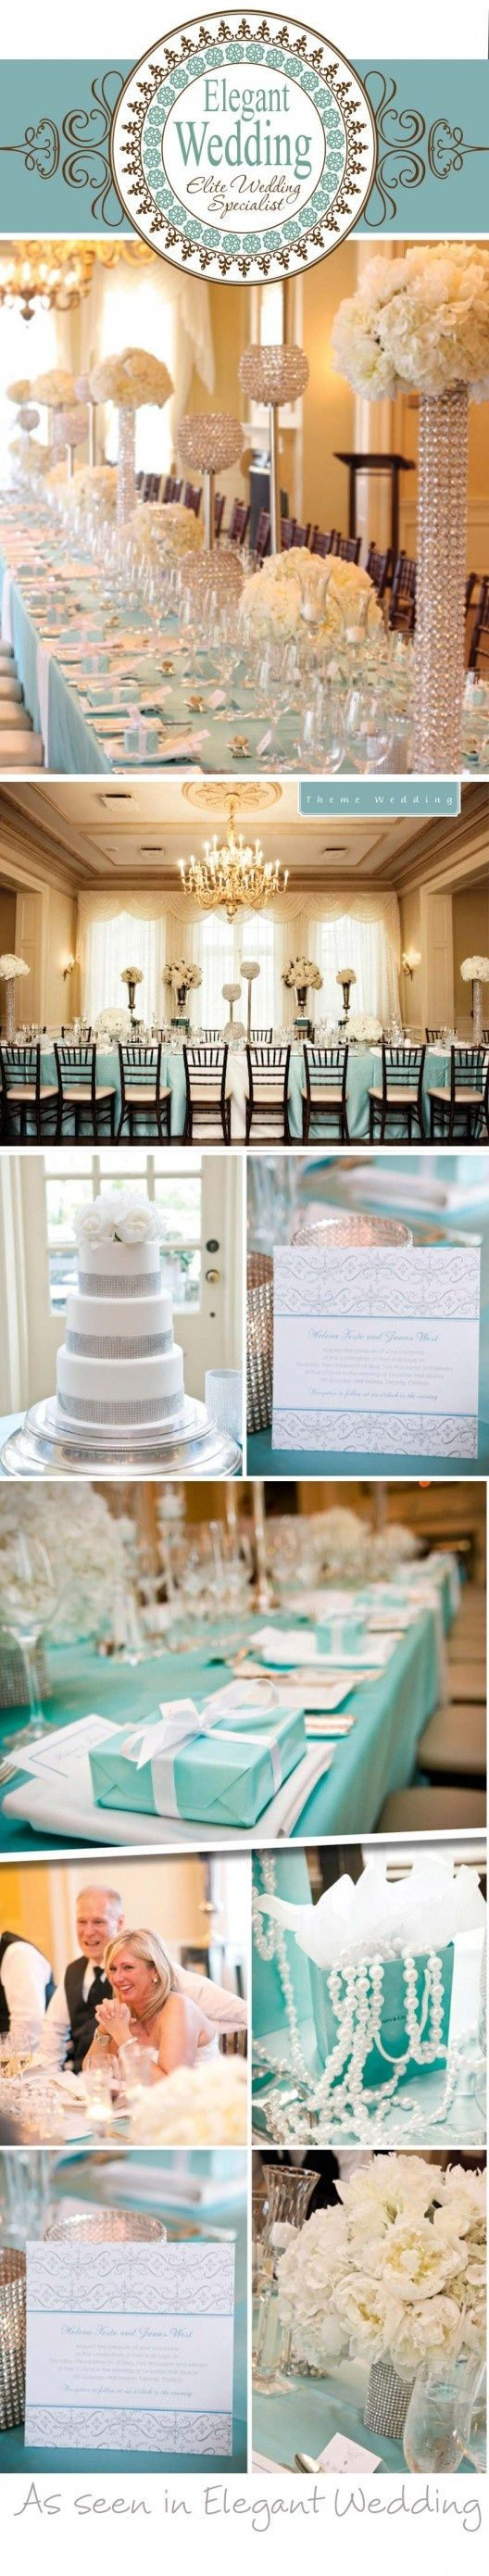 Tiffany blue wedding details